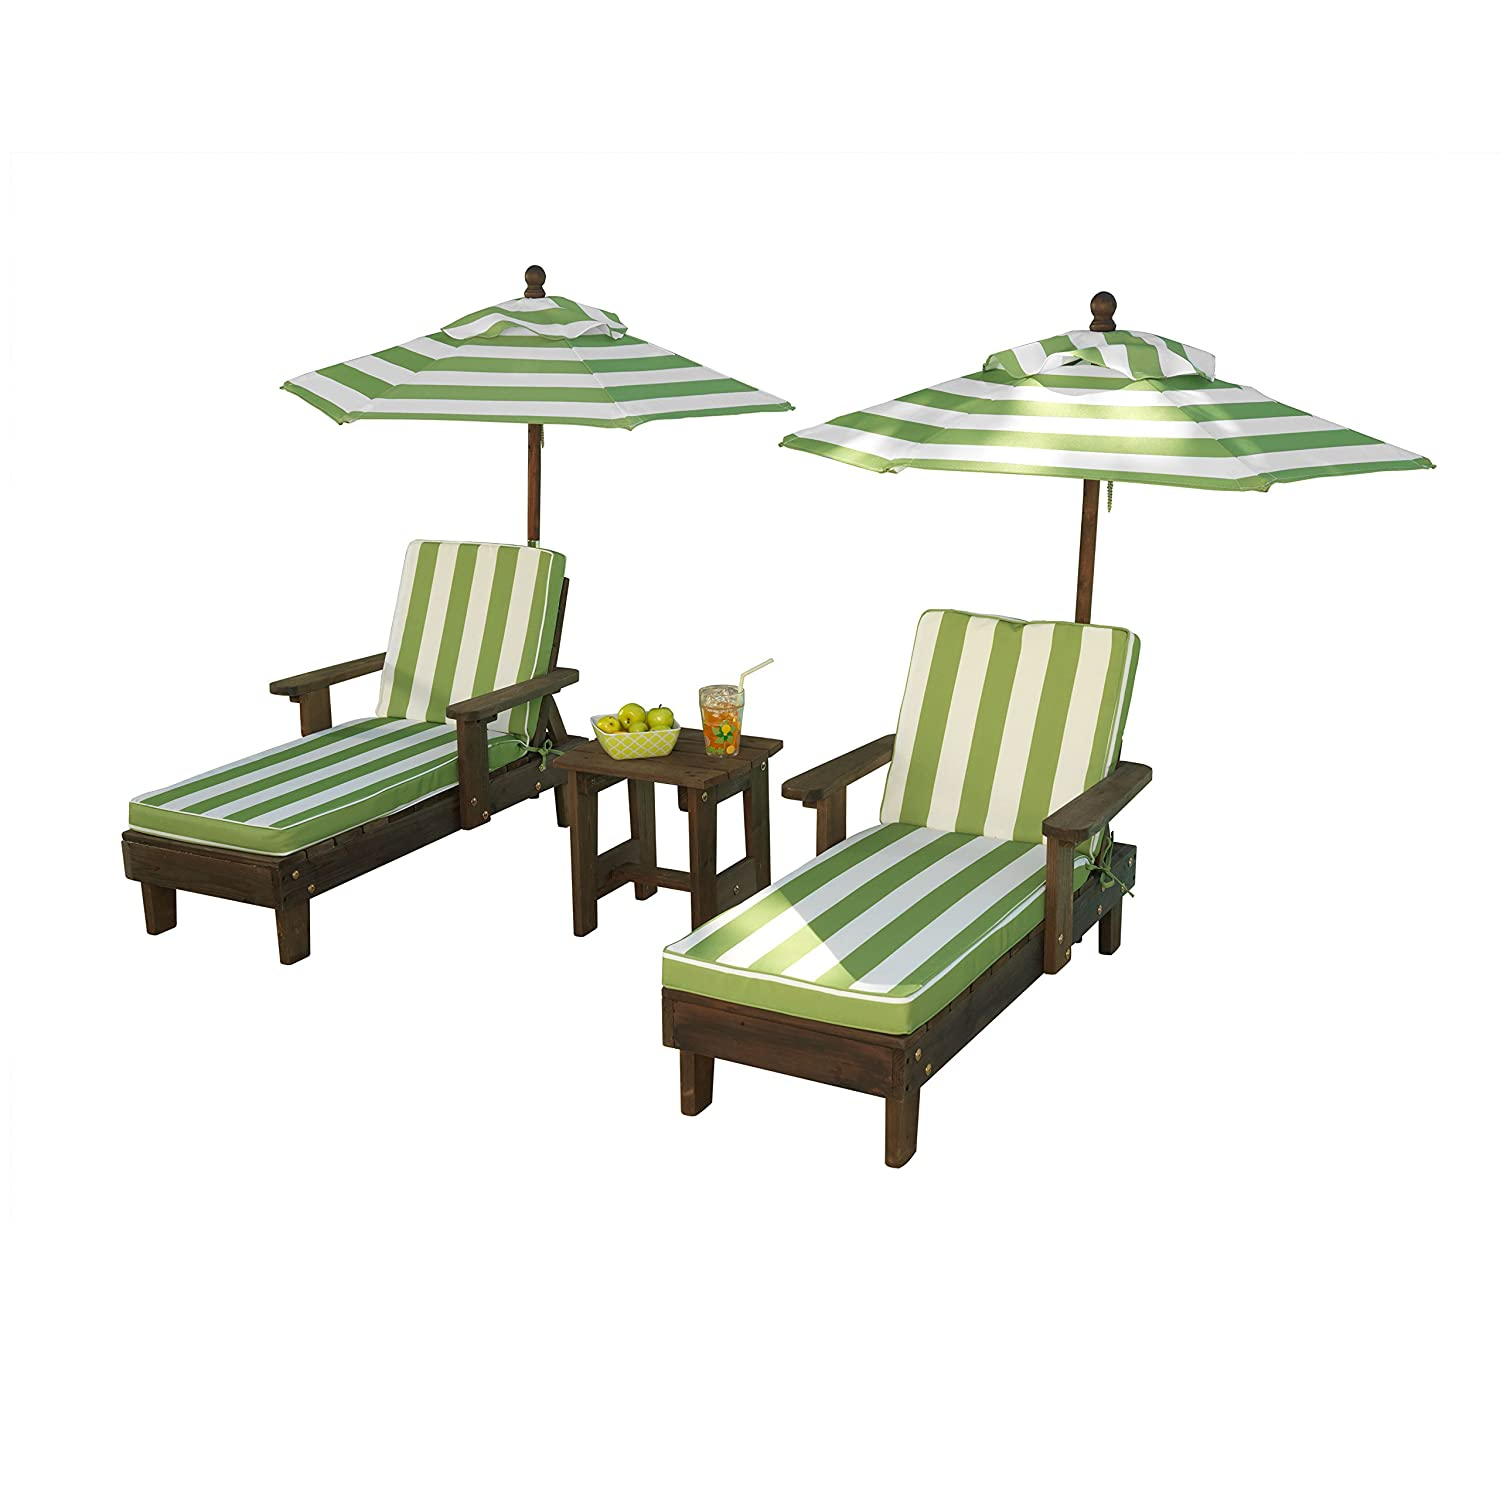 Outdoor Sun Chaise Lounge Umbrella Set Kids Bed Patio Beach Pool Chair Wooden